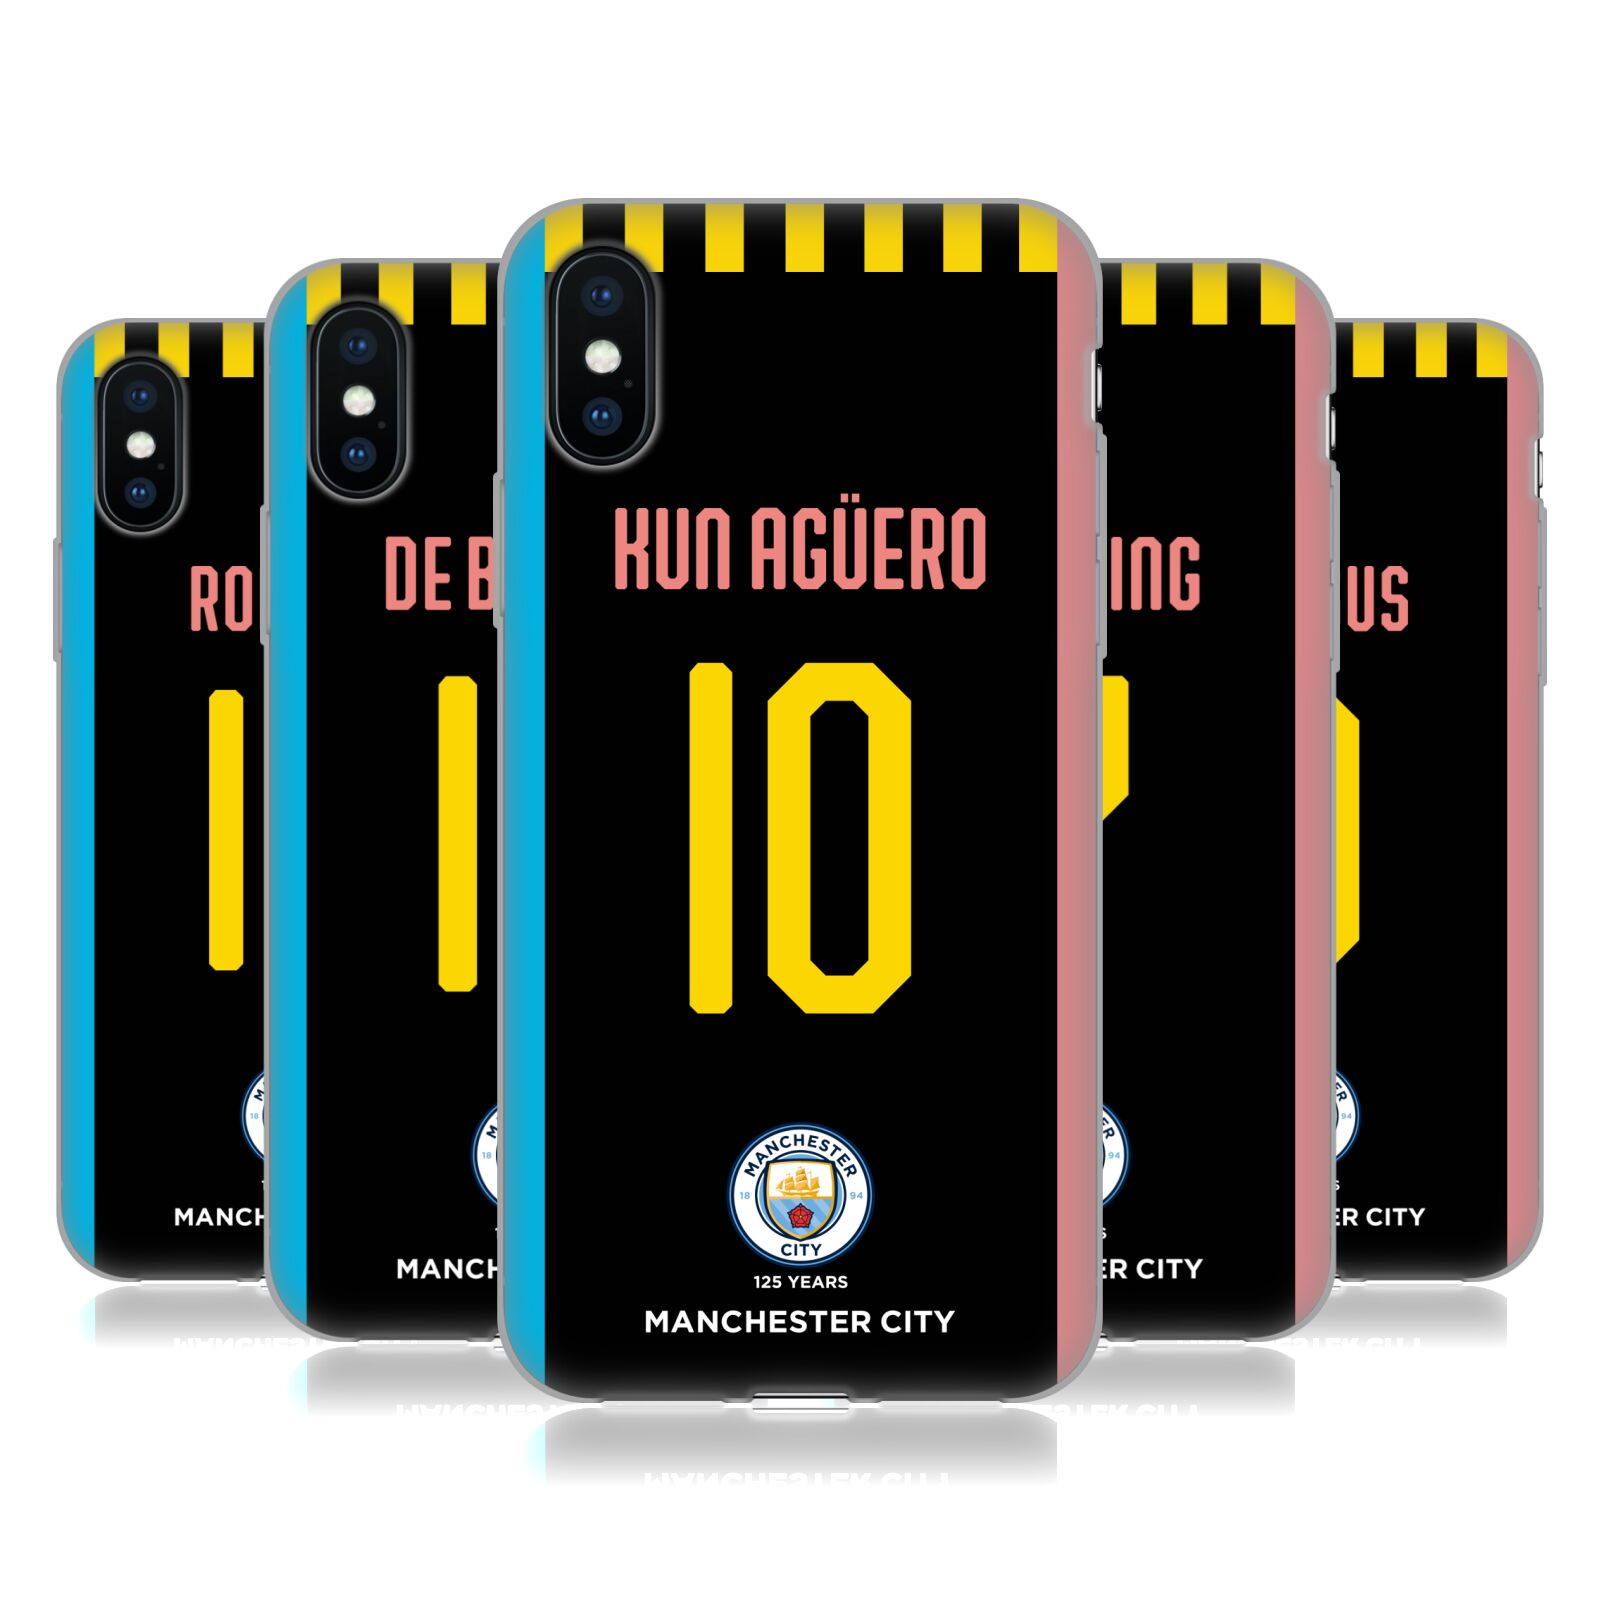 Manchester City Man City FC <!--translate-lineup-->2019/20 PLAYERS AWAY KIT GROUP 1<!--translate-lineup-->